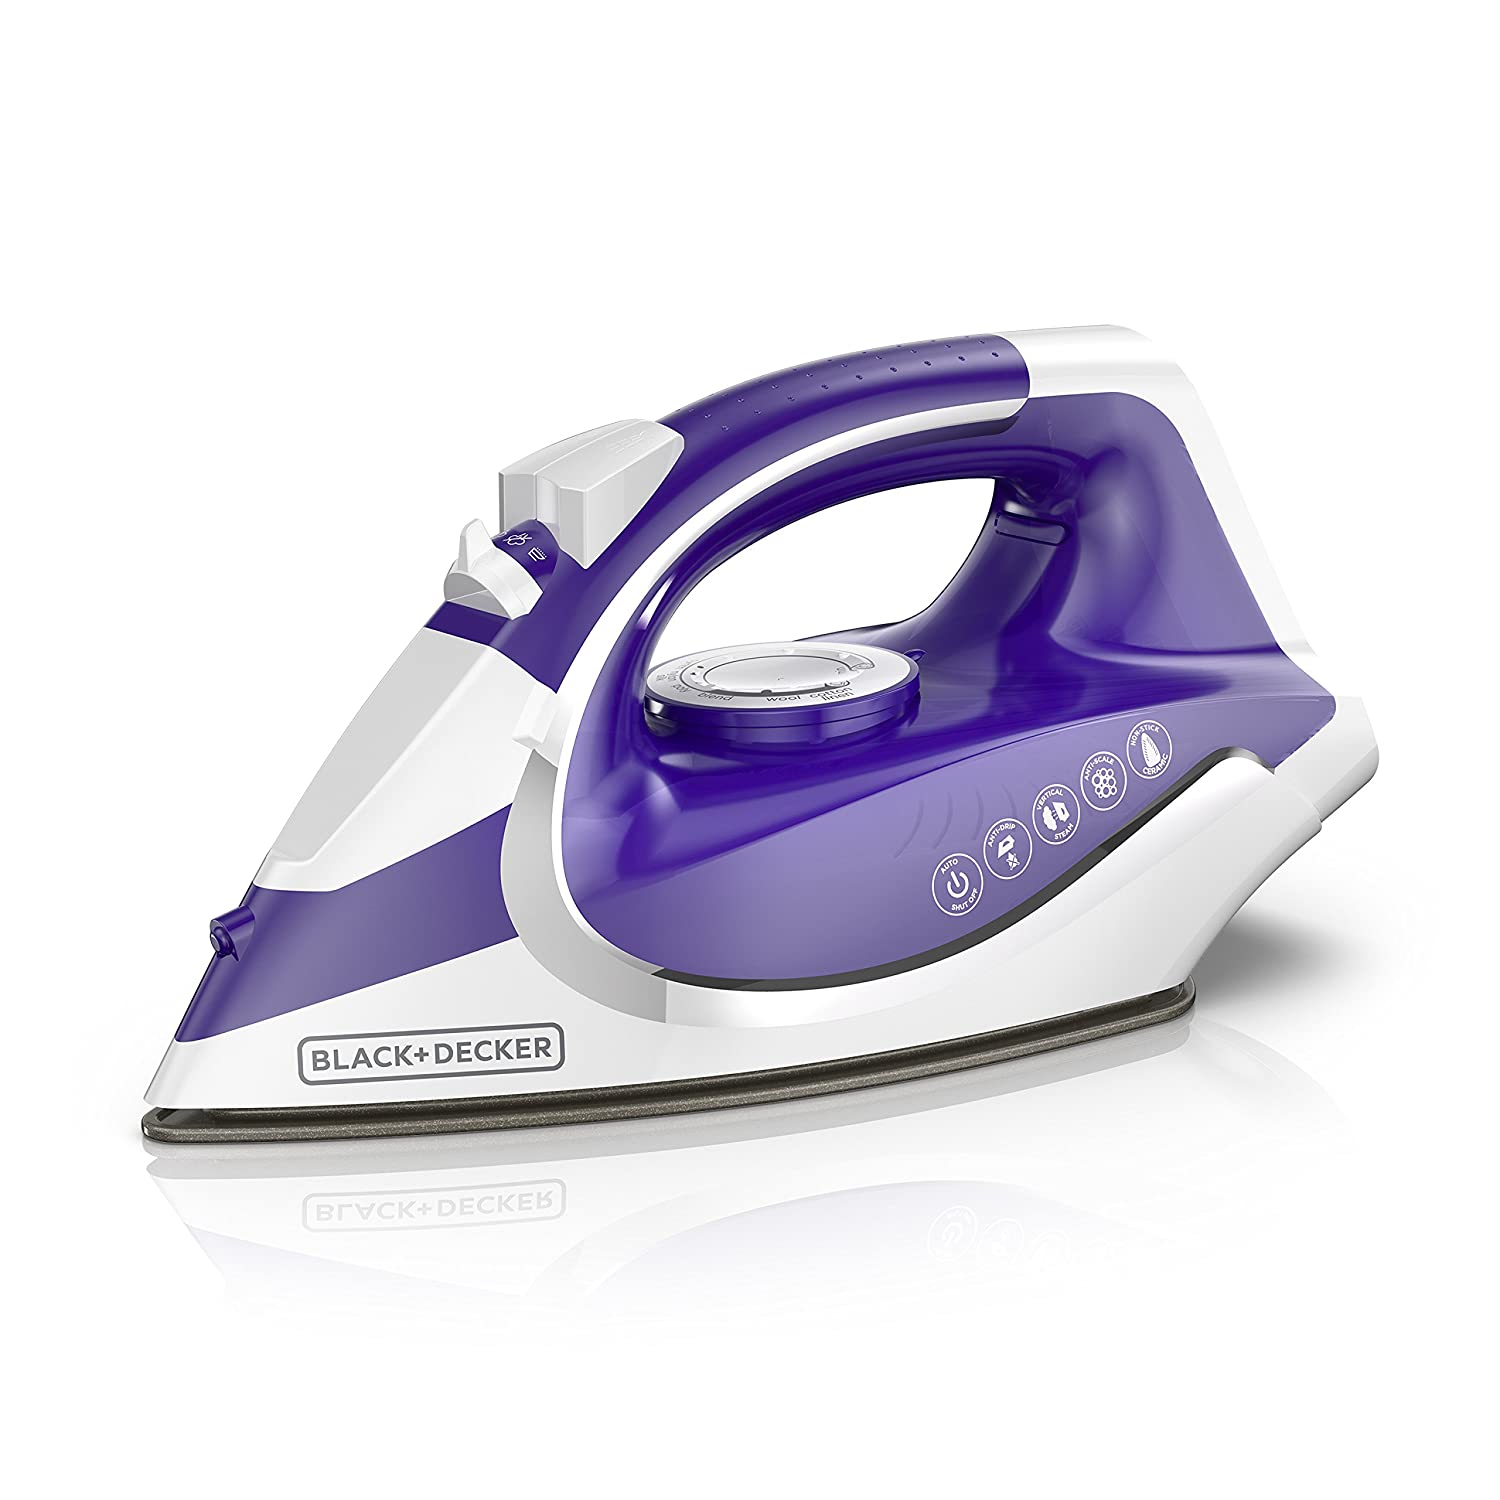 BLACK+DECKER ICL500 Light 'N Go Cordless Iron with Nonstick Soleplate Large Water Tank Purple